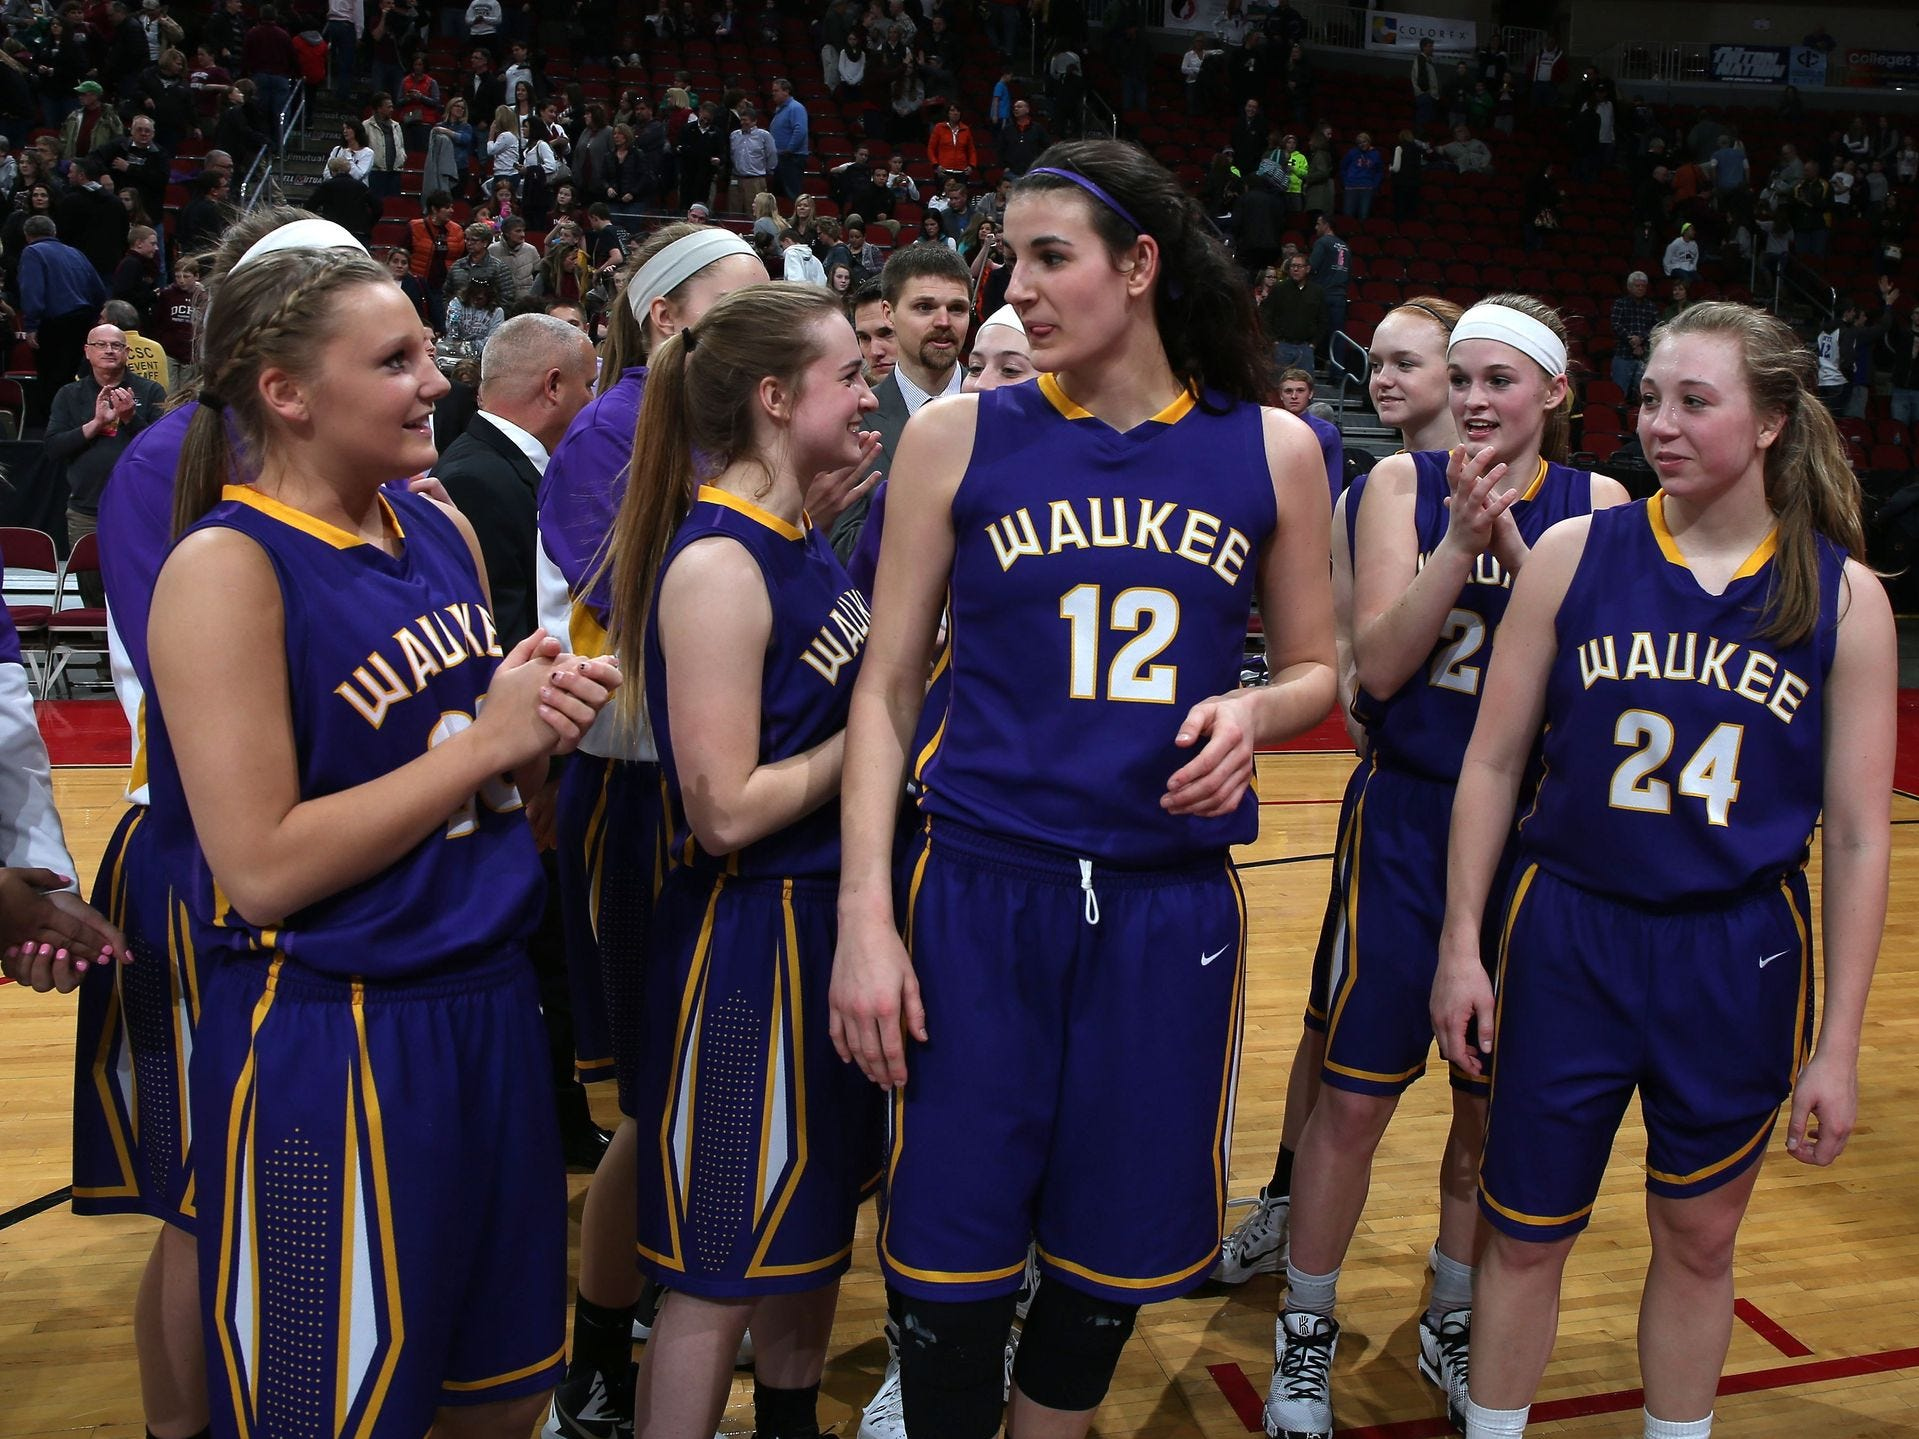 Members of the Waukee girls basketball team celebrate after a win over Dowling Catholic on Friday, March 6, 2015, during the 5A girls semifinals at the 2014-15 Iowa girls basketball tournament in Des Moines. Bryon Houlgrave/The Register